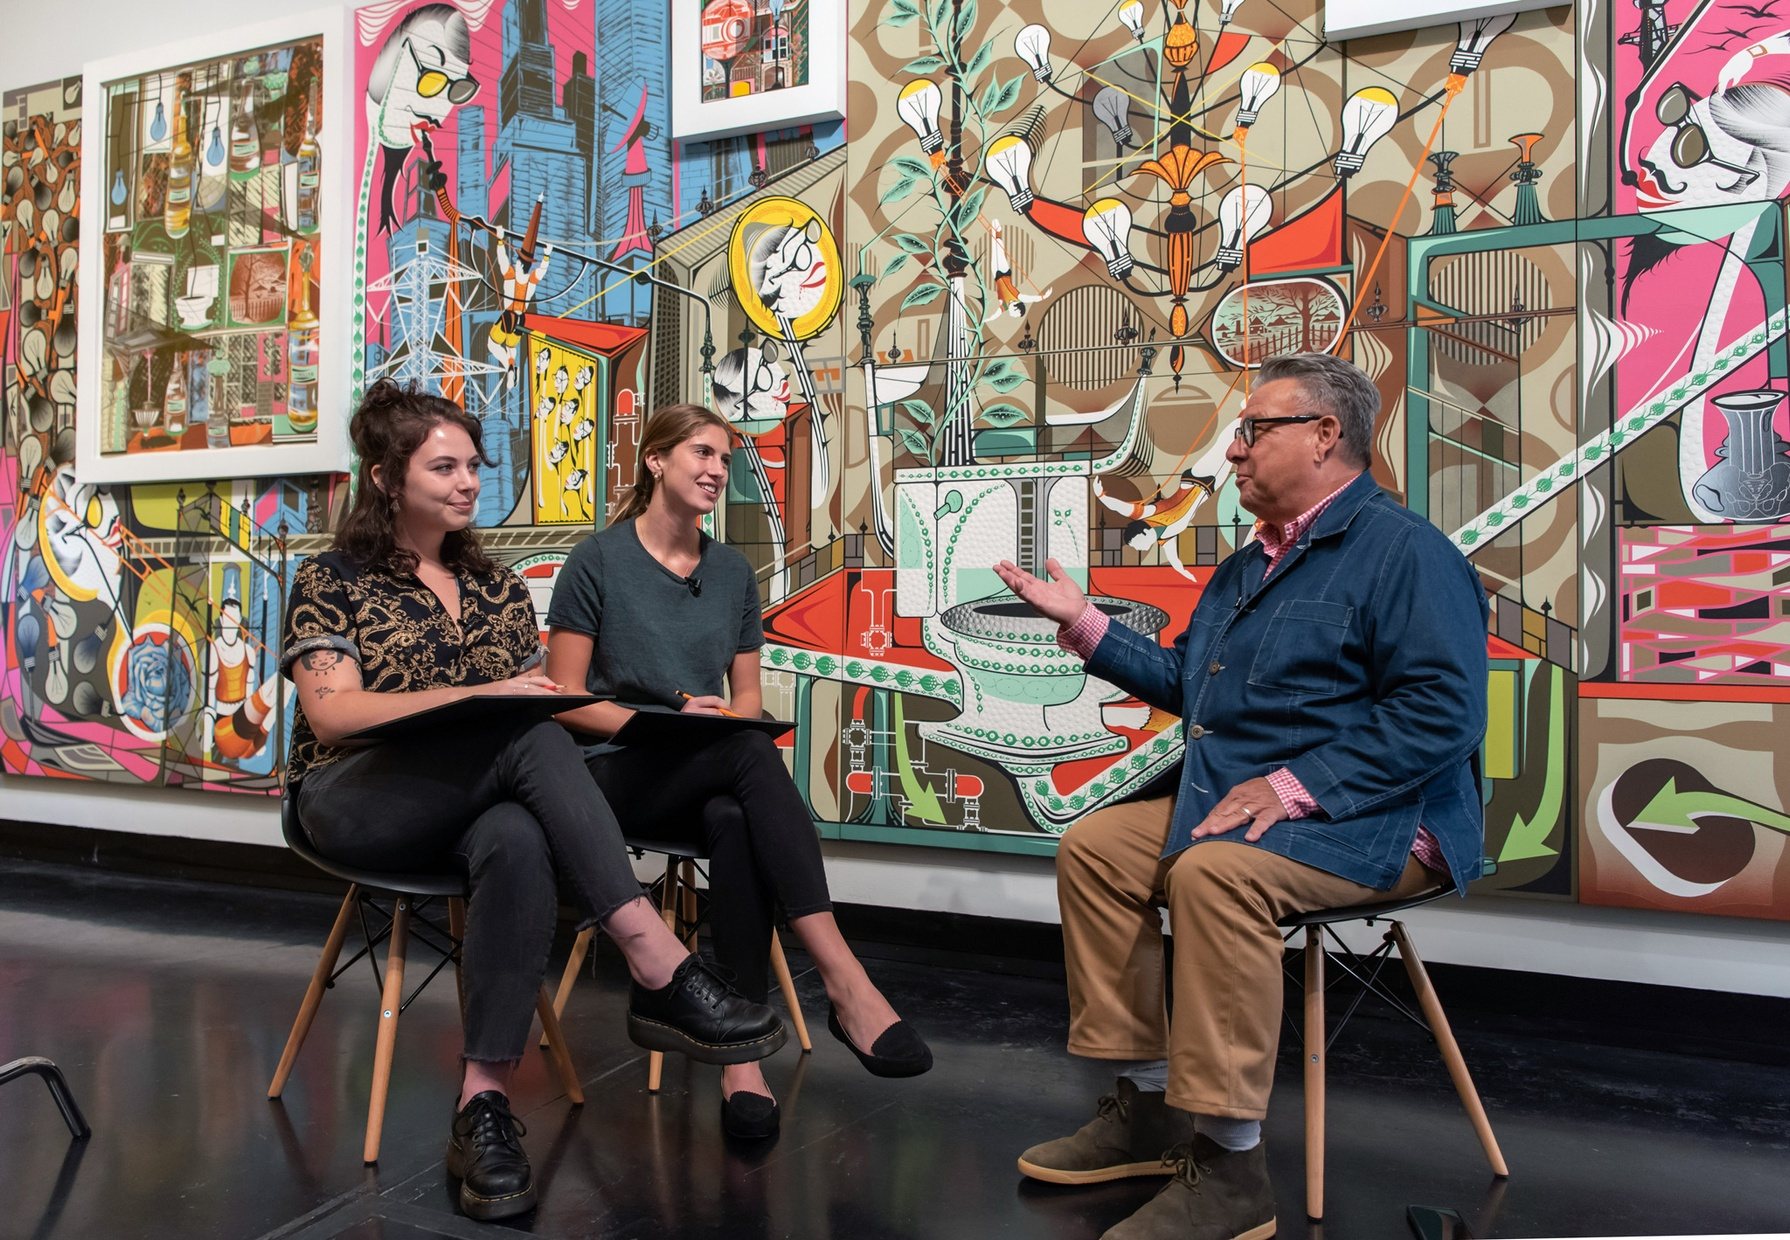 Two young, light skinned women sit in chairs across from artist Lari Pittman, a light-skinned male, also sitting in a chair. A huge and colorful painting spans the entire wall behind them.